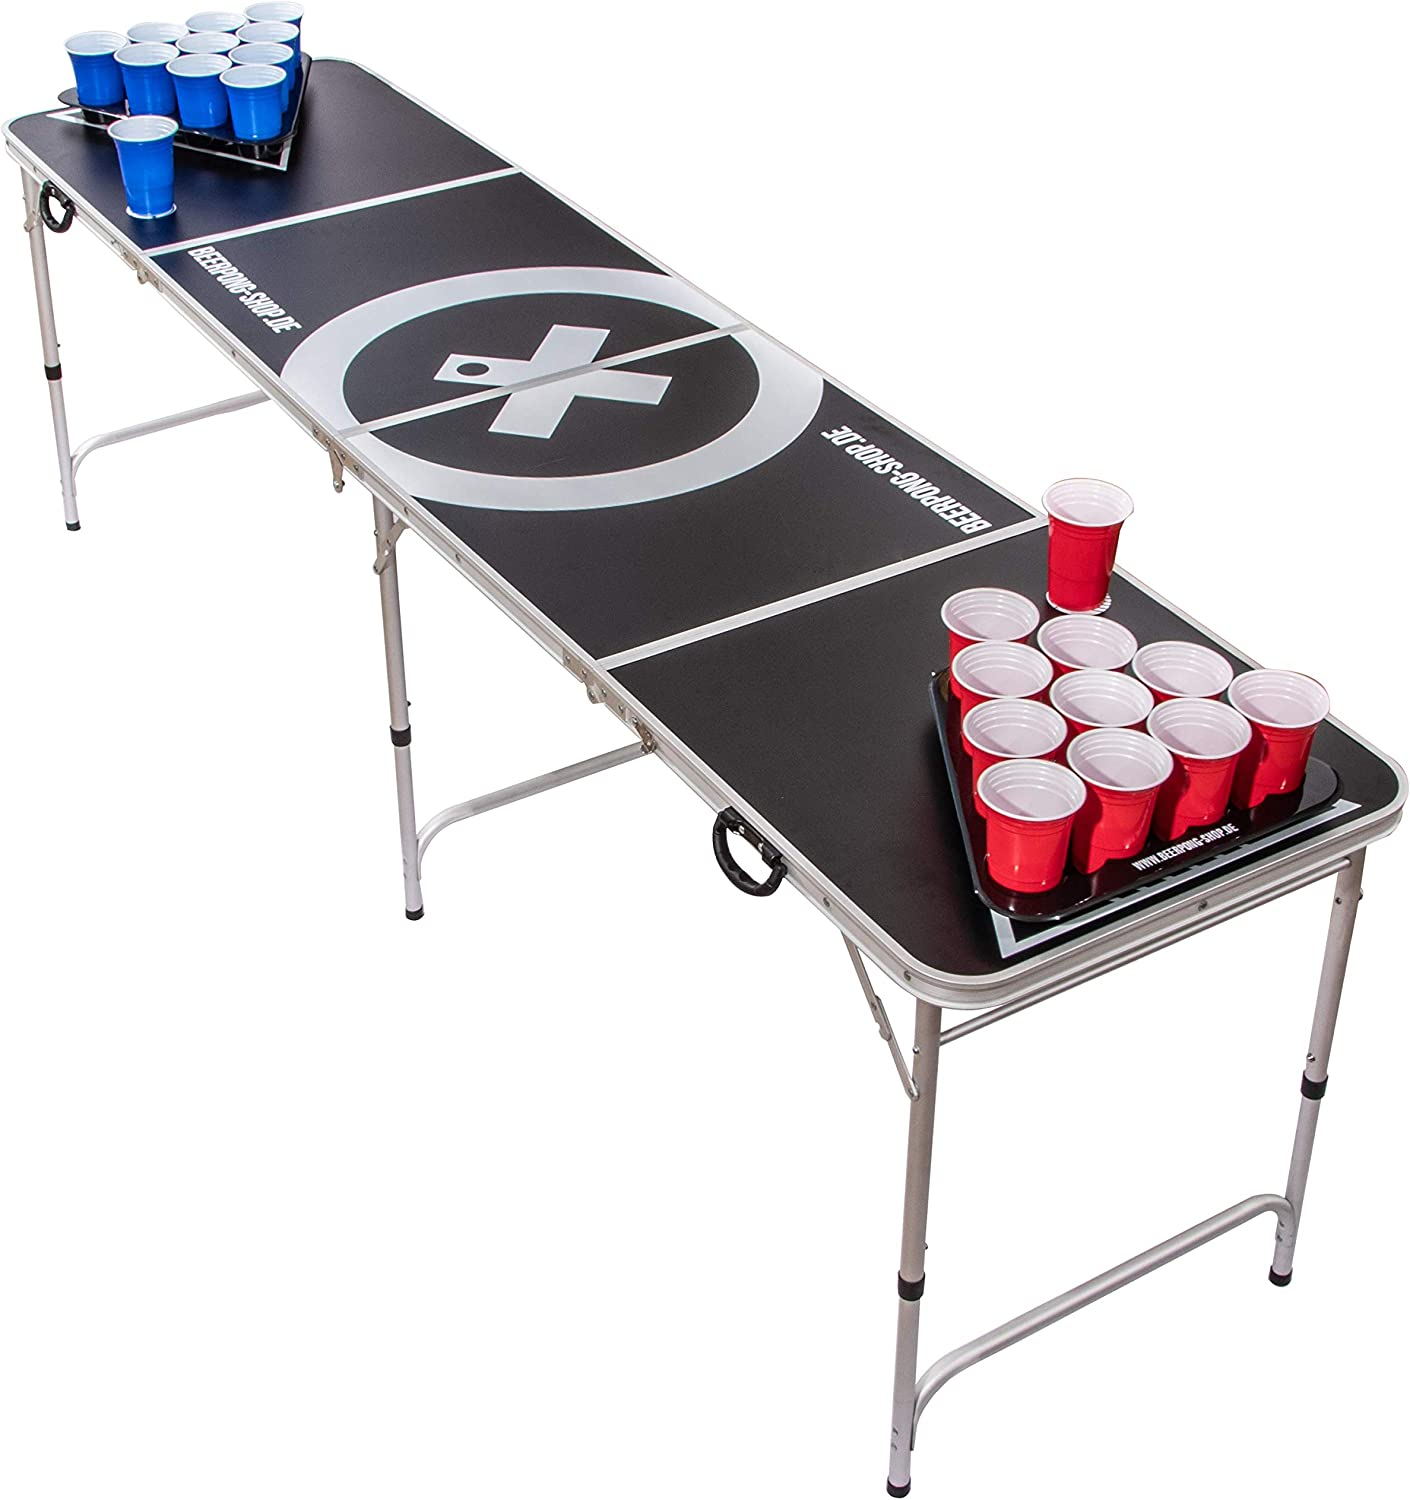 Beer Pong Tisch Set Audio Table inkl. 100 Becher (50 Rot & 50 Blau), 6 Bälle, Regelwerk & 2 Gratis Bier Pong Racks